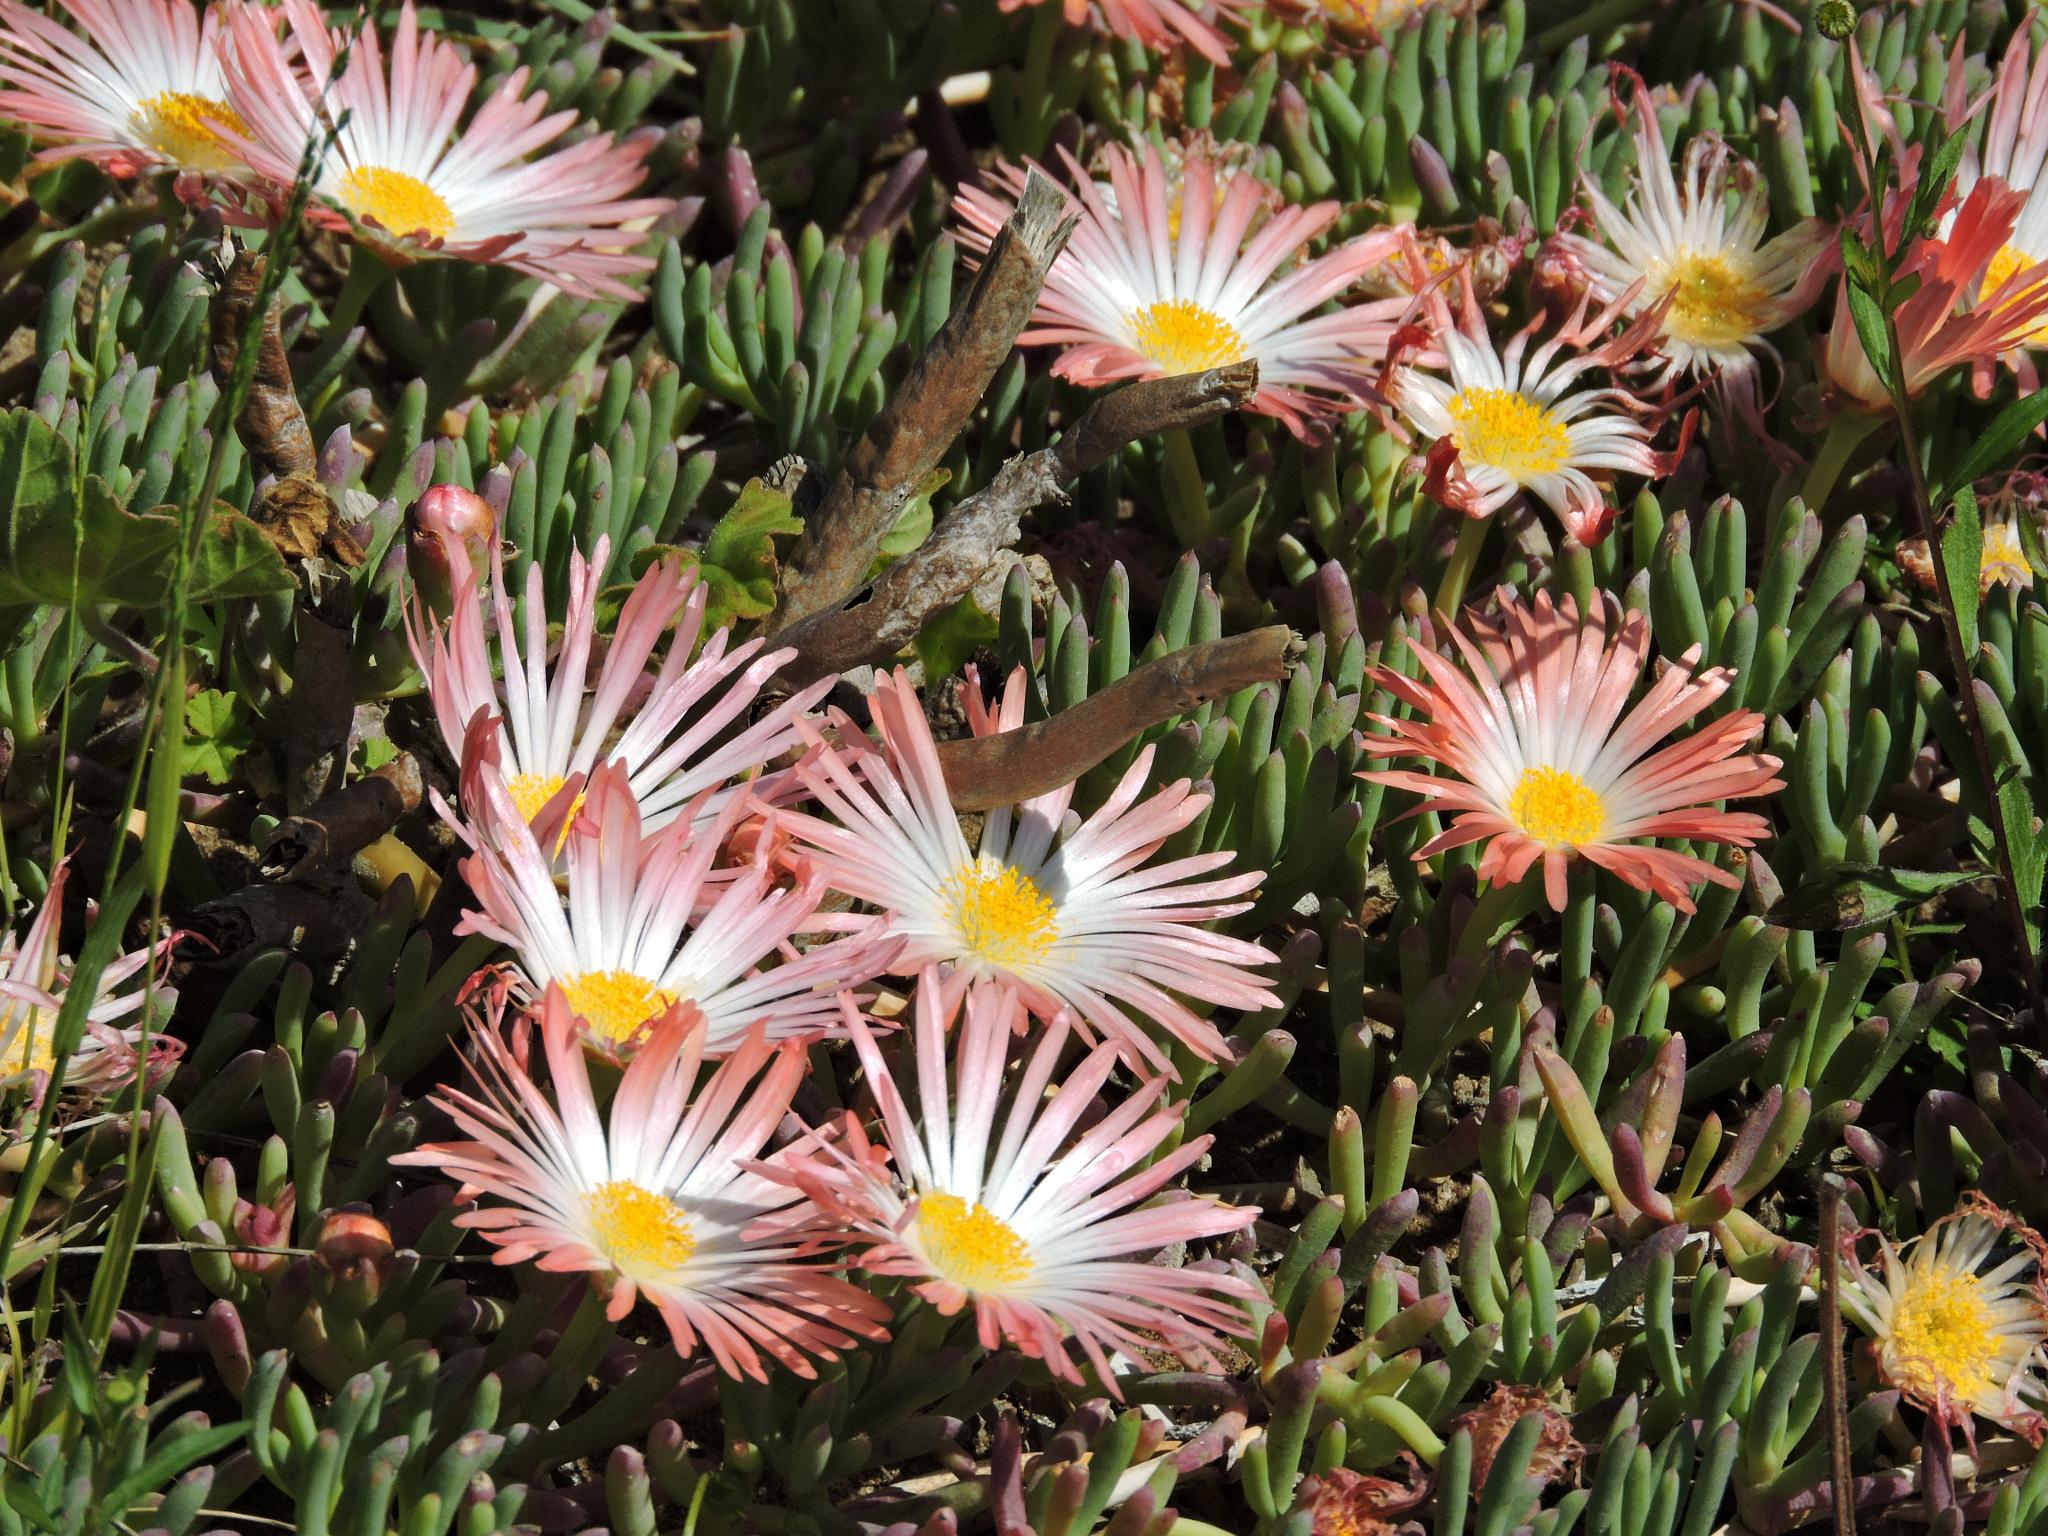 Ice Plant by the Lake by the Sea by ralph.s.carlson